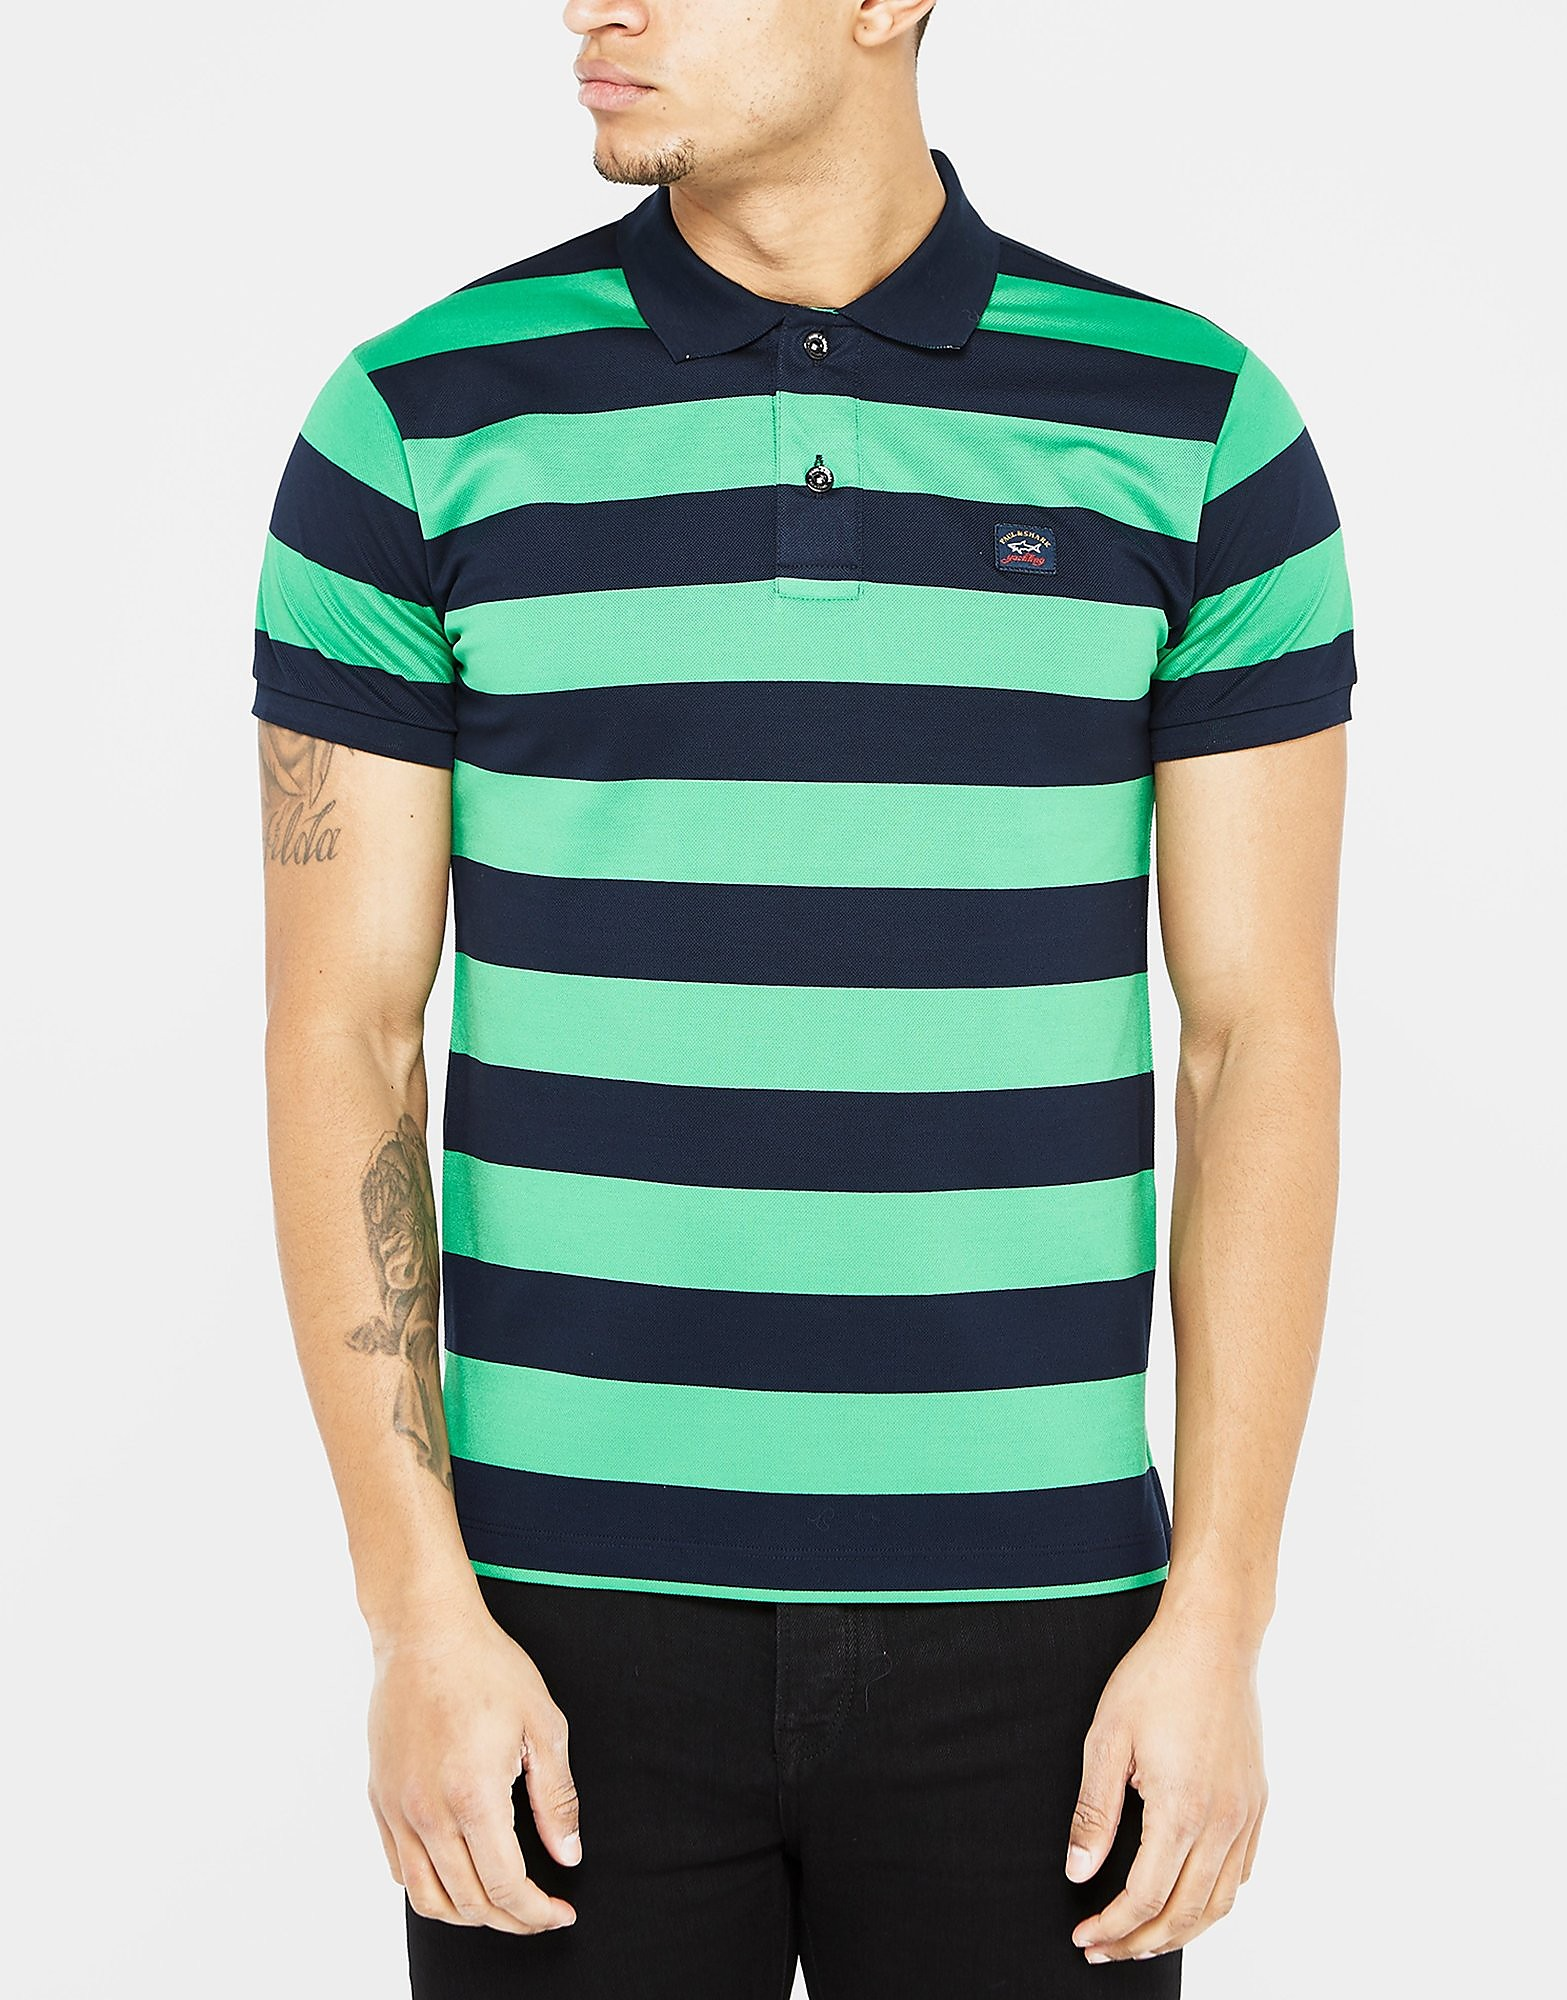 Paul & Shark Black Stripe Polo Shirt